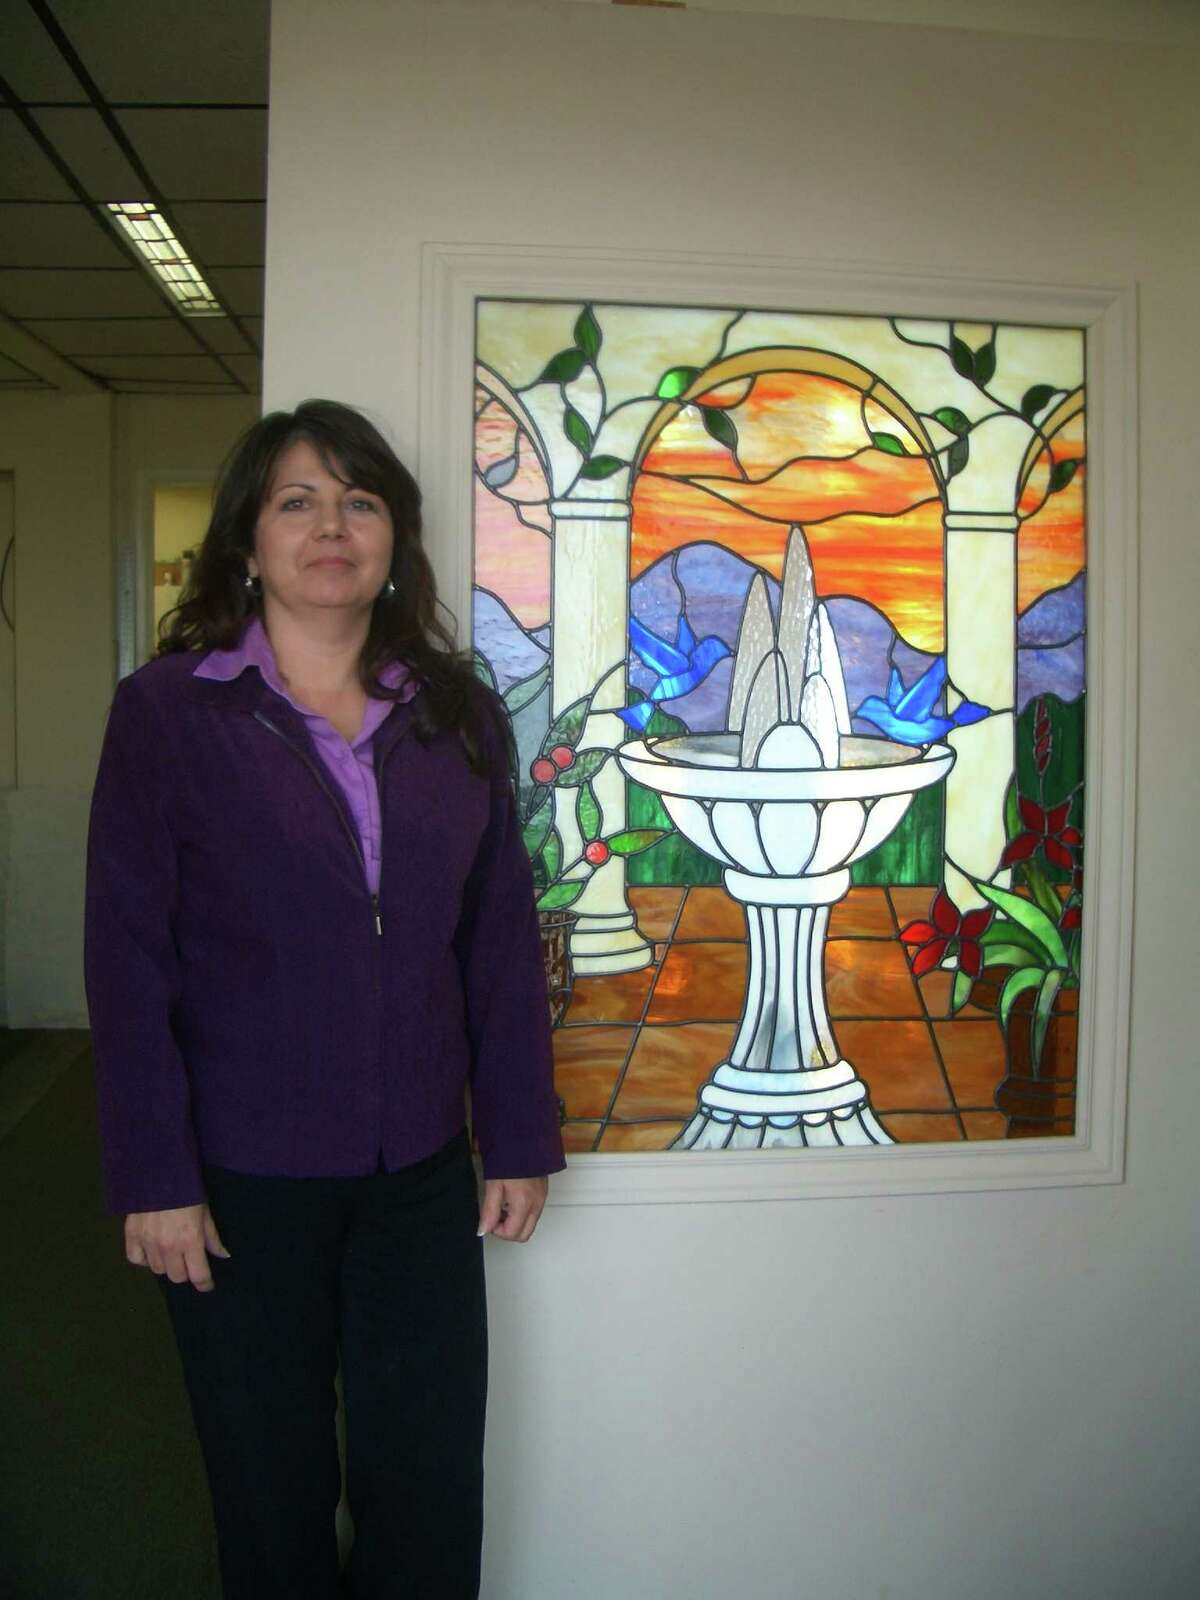 Teena Herrera designs stained-glass pieces, and her husband, Ralph, builds and installs the works they create at H and H Glass Design in San Antonio, Texas.